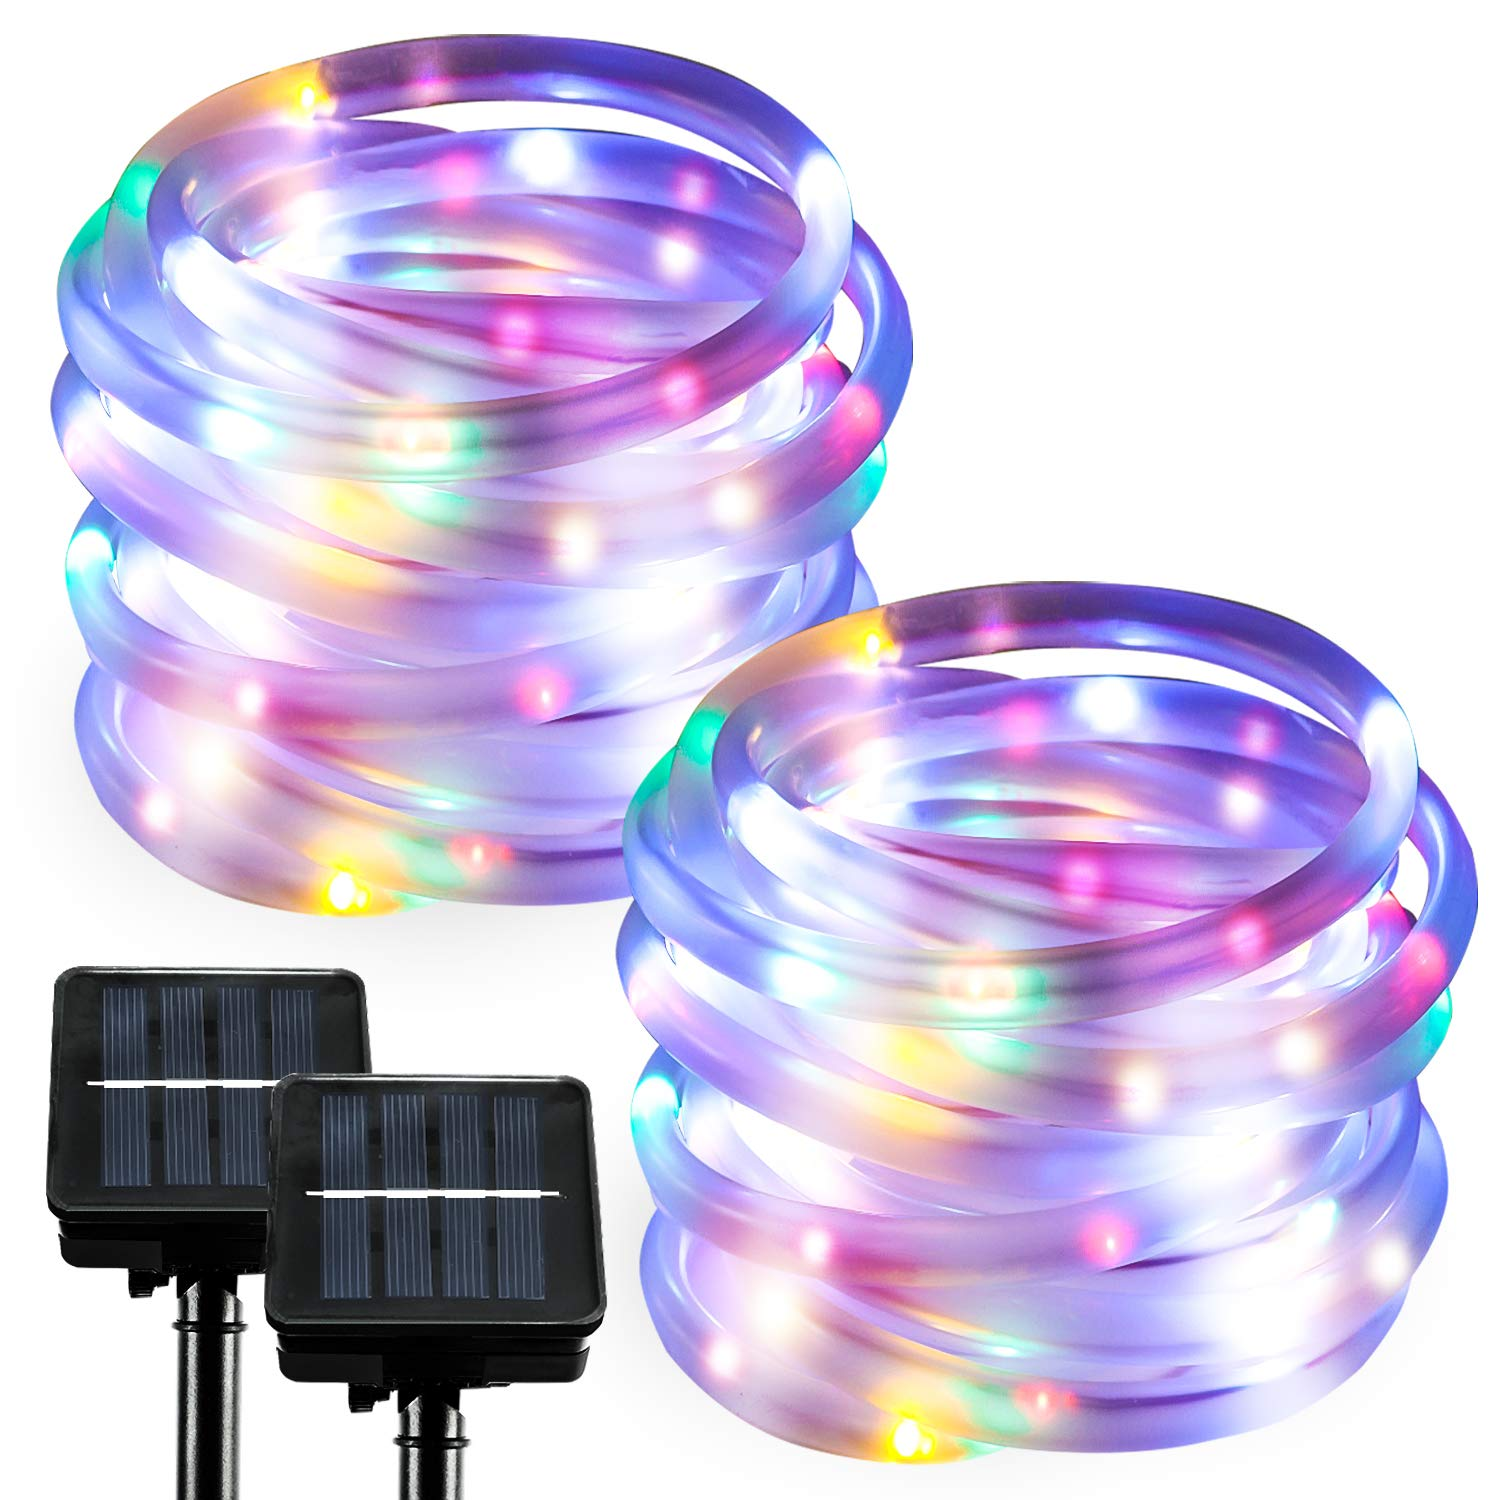 2 Pack Solar Rope Lights Outdoor LED String Lights Christmas Decorative Lights for Garden Patio Party Yard Warm White 23FTx2 WEIKETE